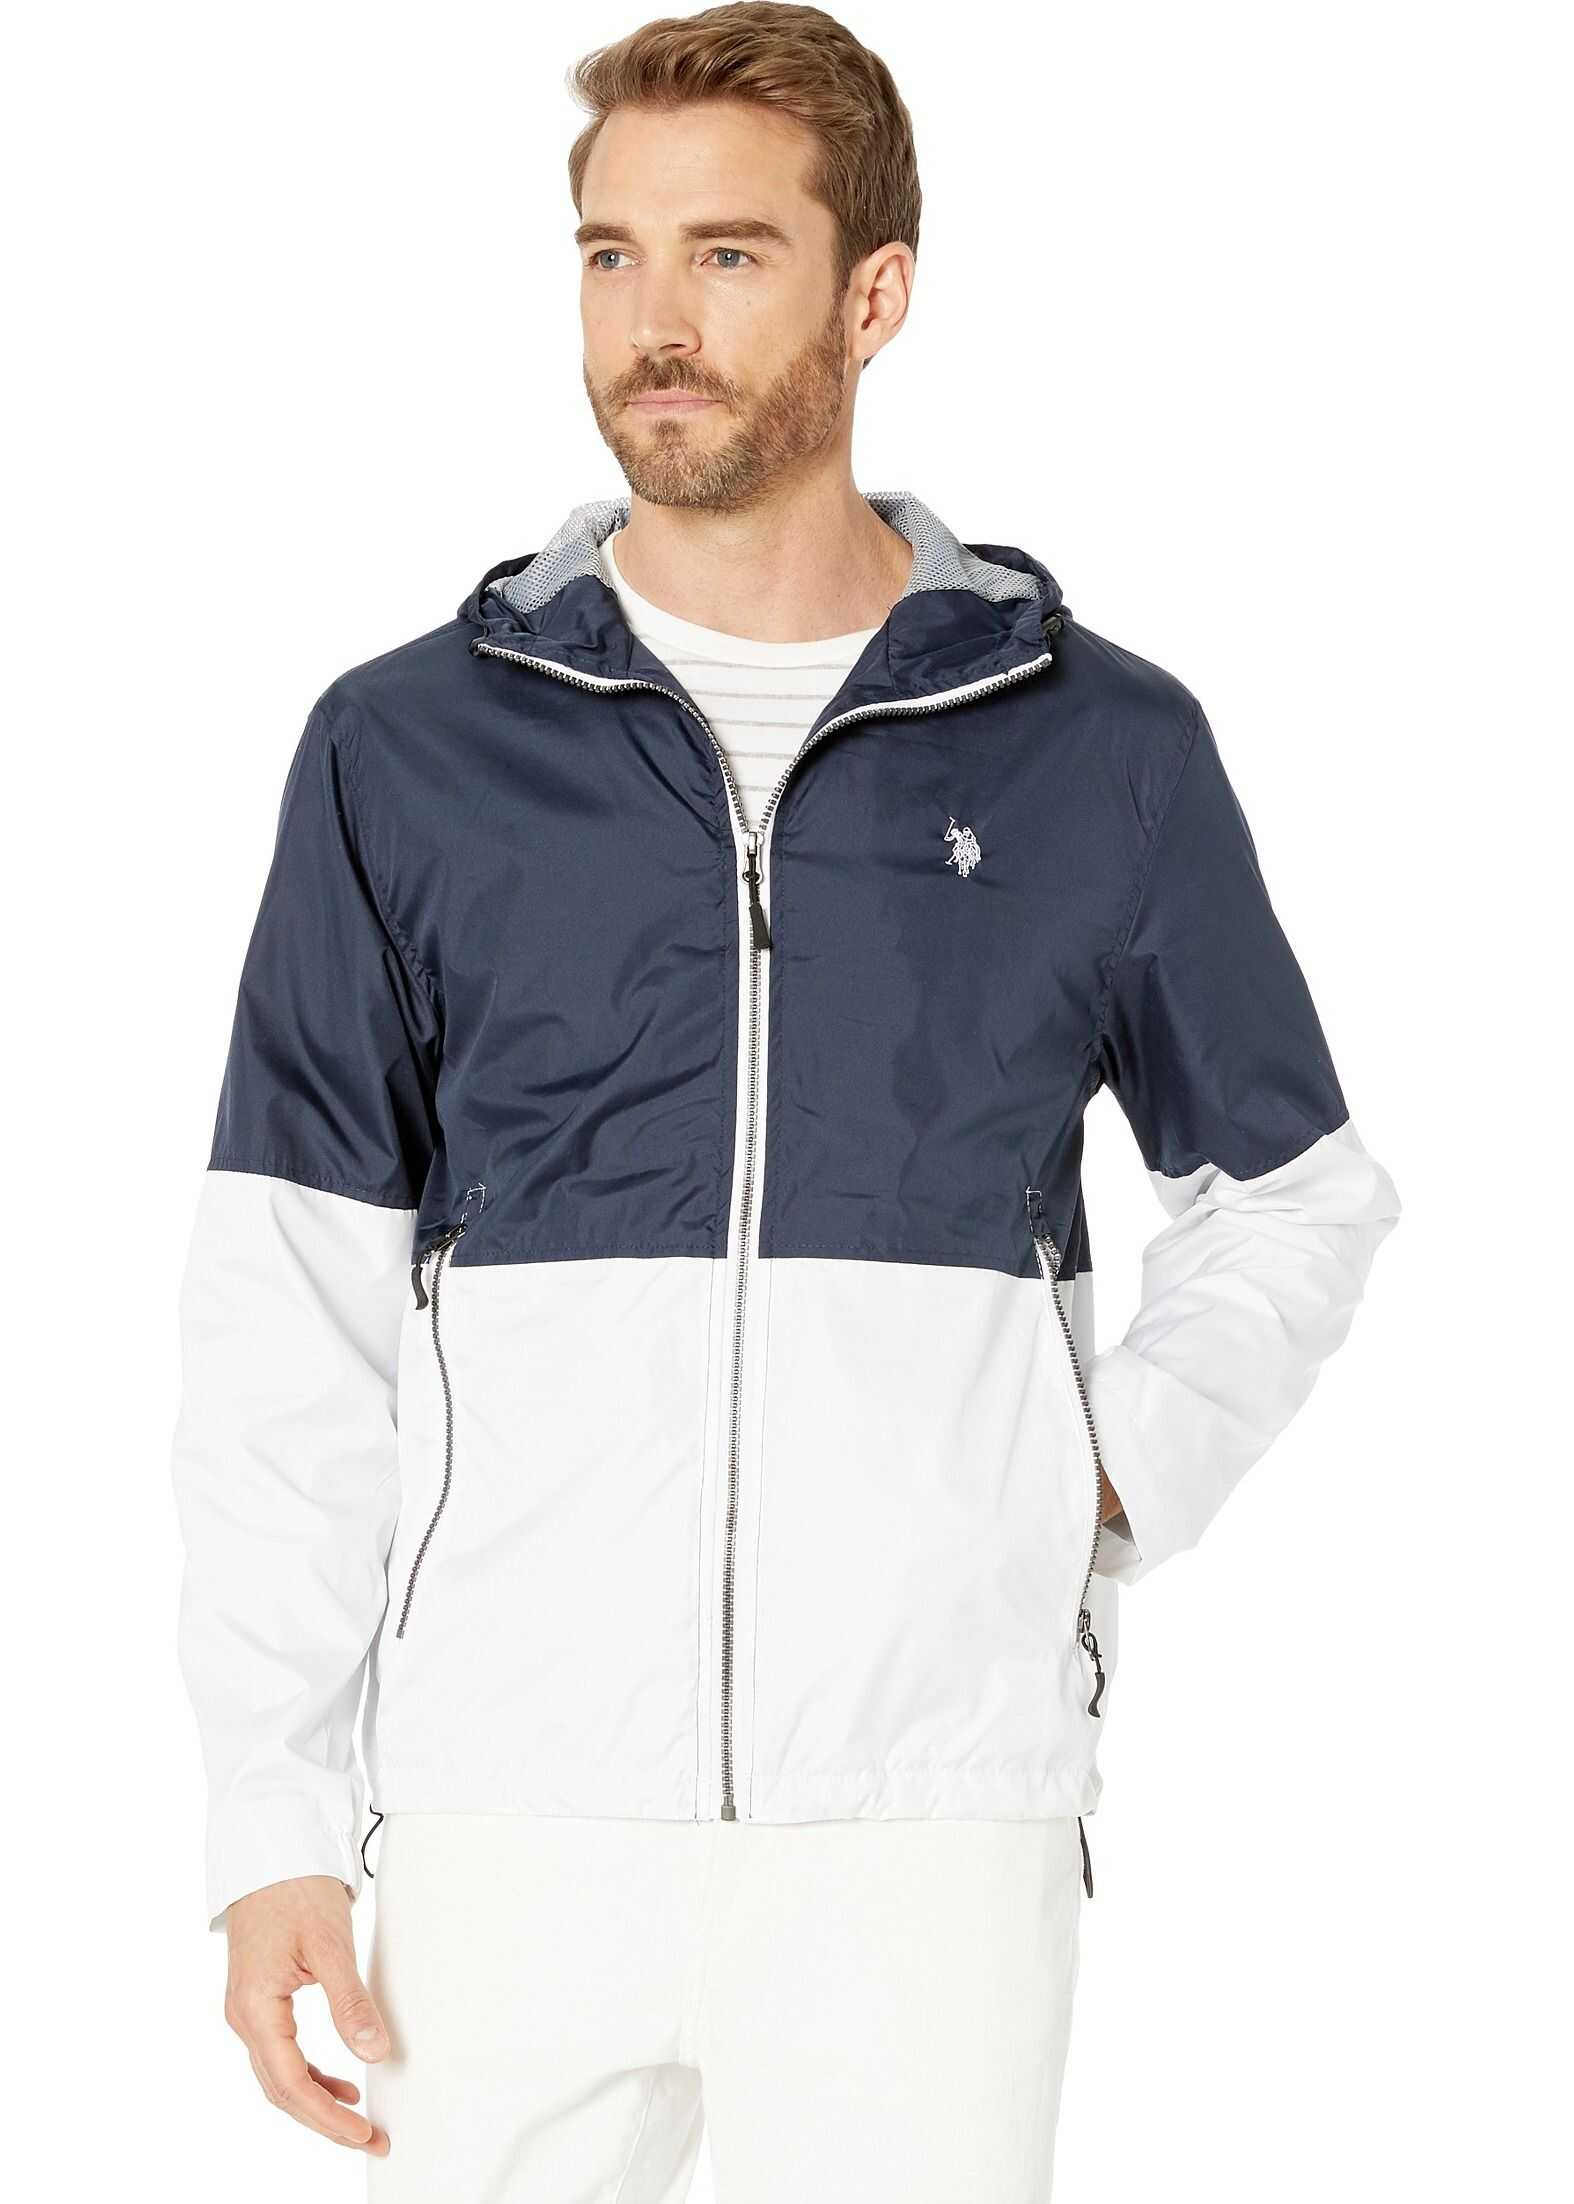 U.S. POLO ASSN. Hooded Color Block Windbreaker w/ Rib Cuff Classic Navy